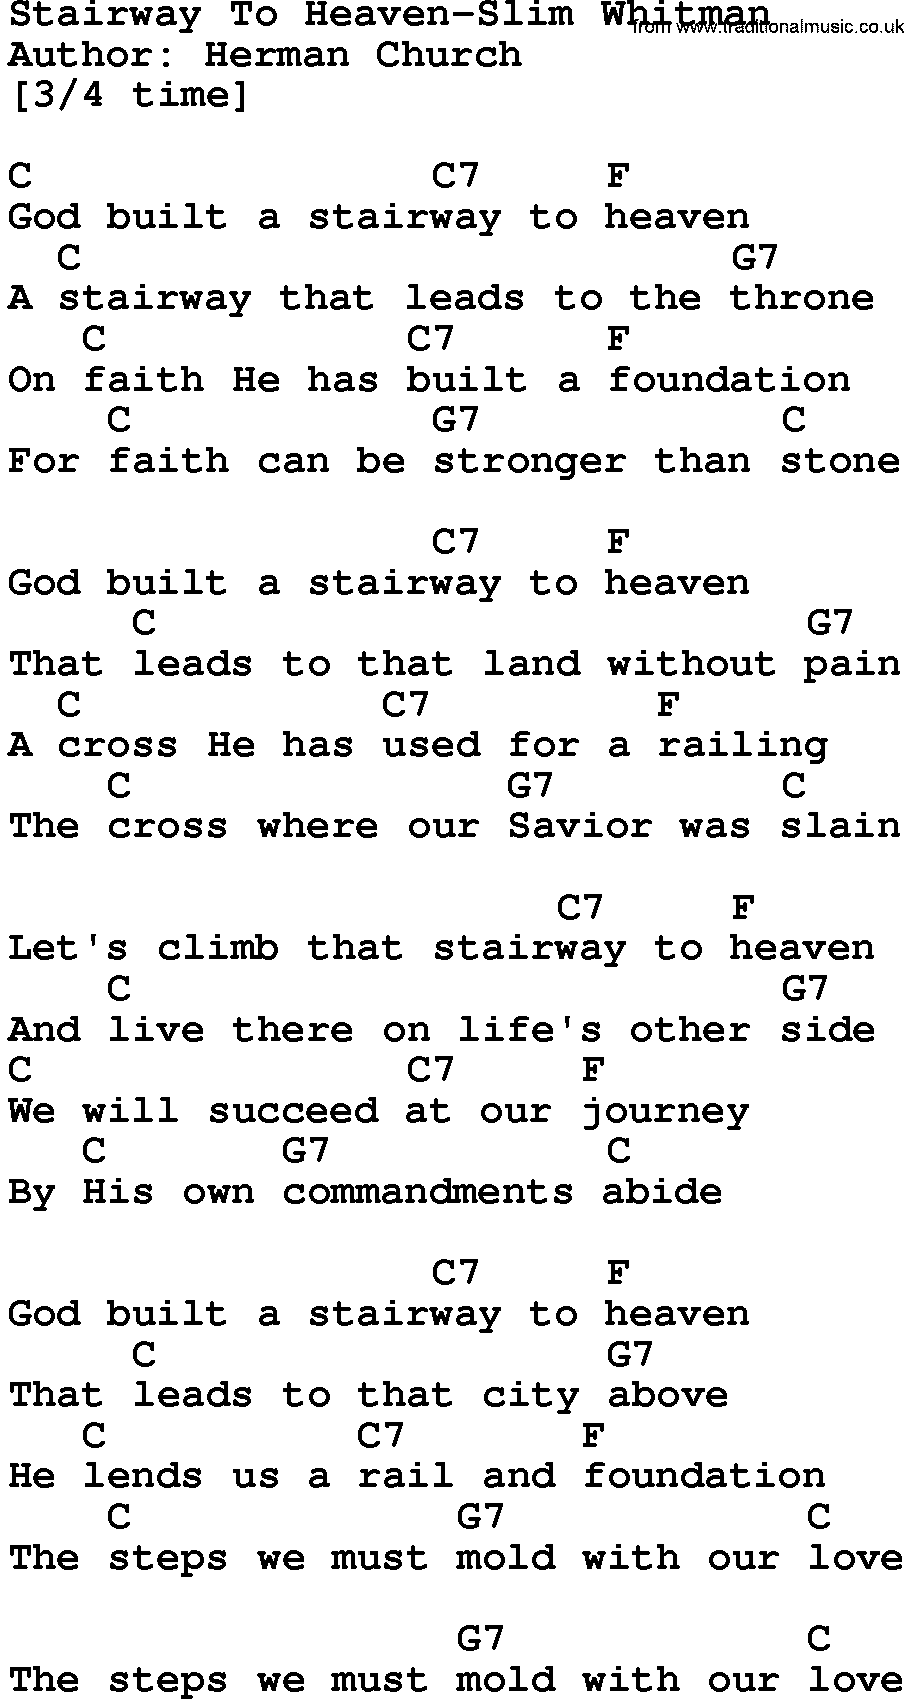 Country Musicstairway To Heaven Slim Whitman Lyrics And Chords